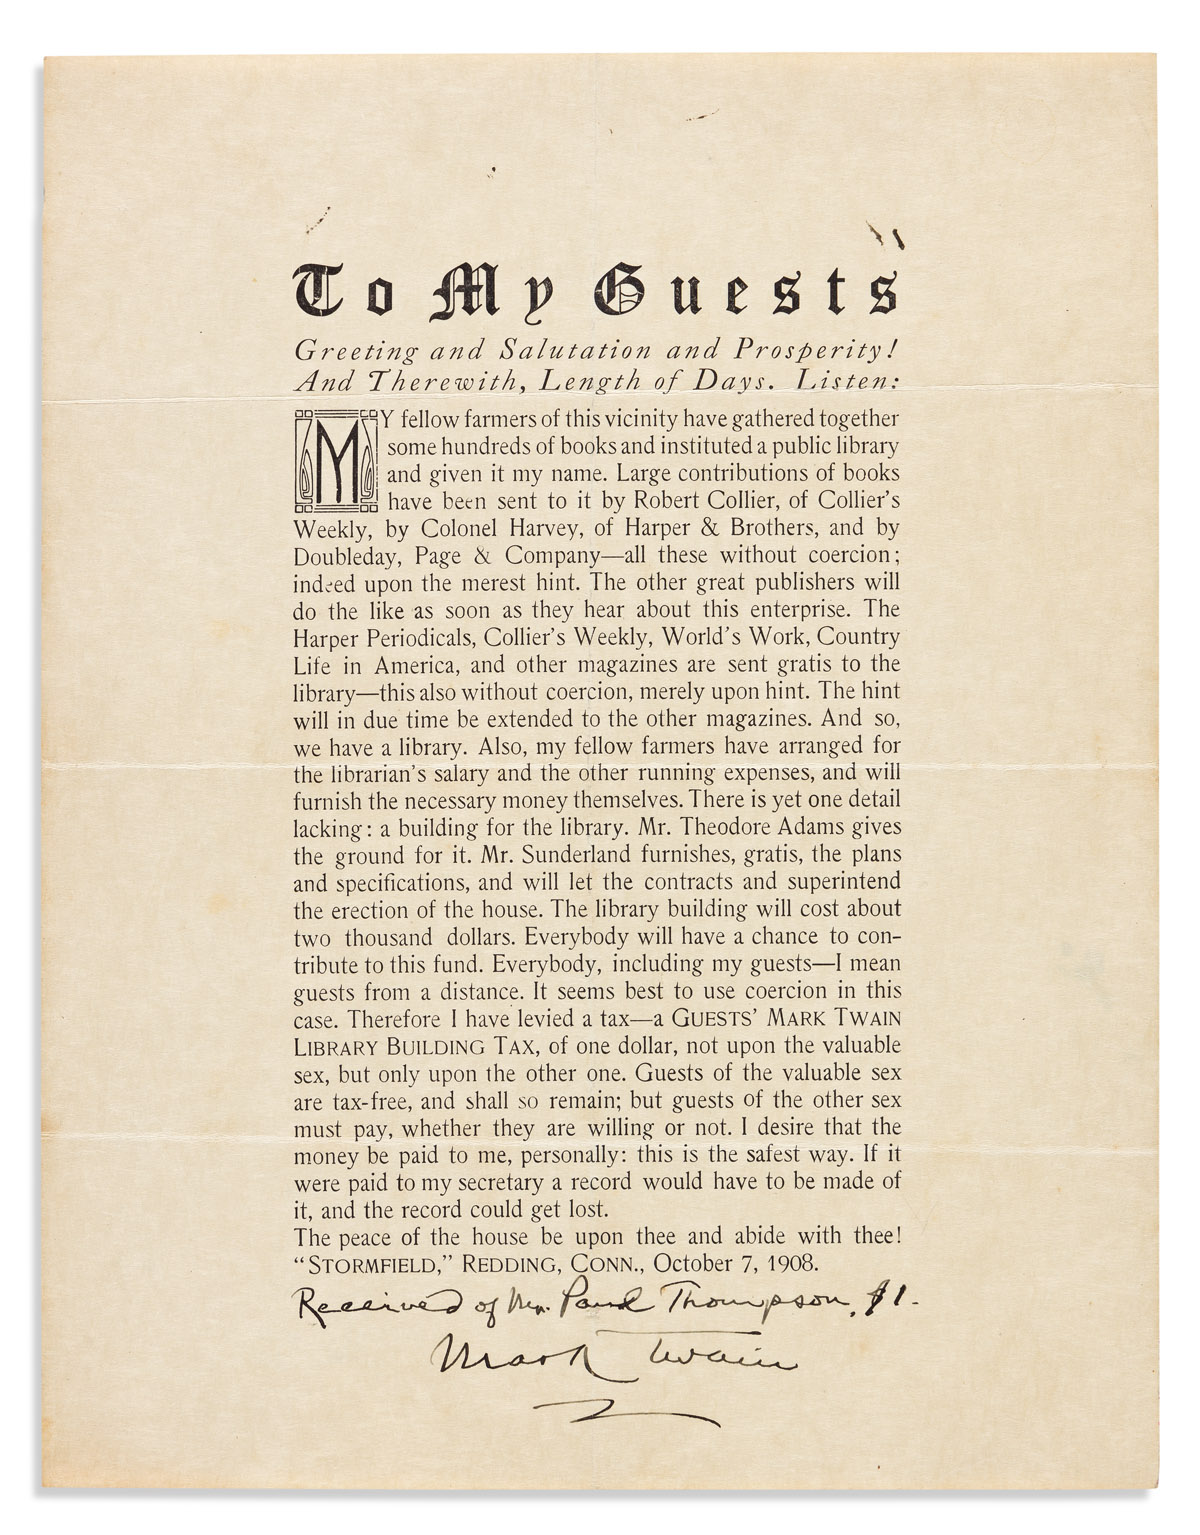 """TWAIN, MARK. Printed circular letter Signed and Inscribed, """"Received of Mr. Paul Thompson. $1,"""""""